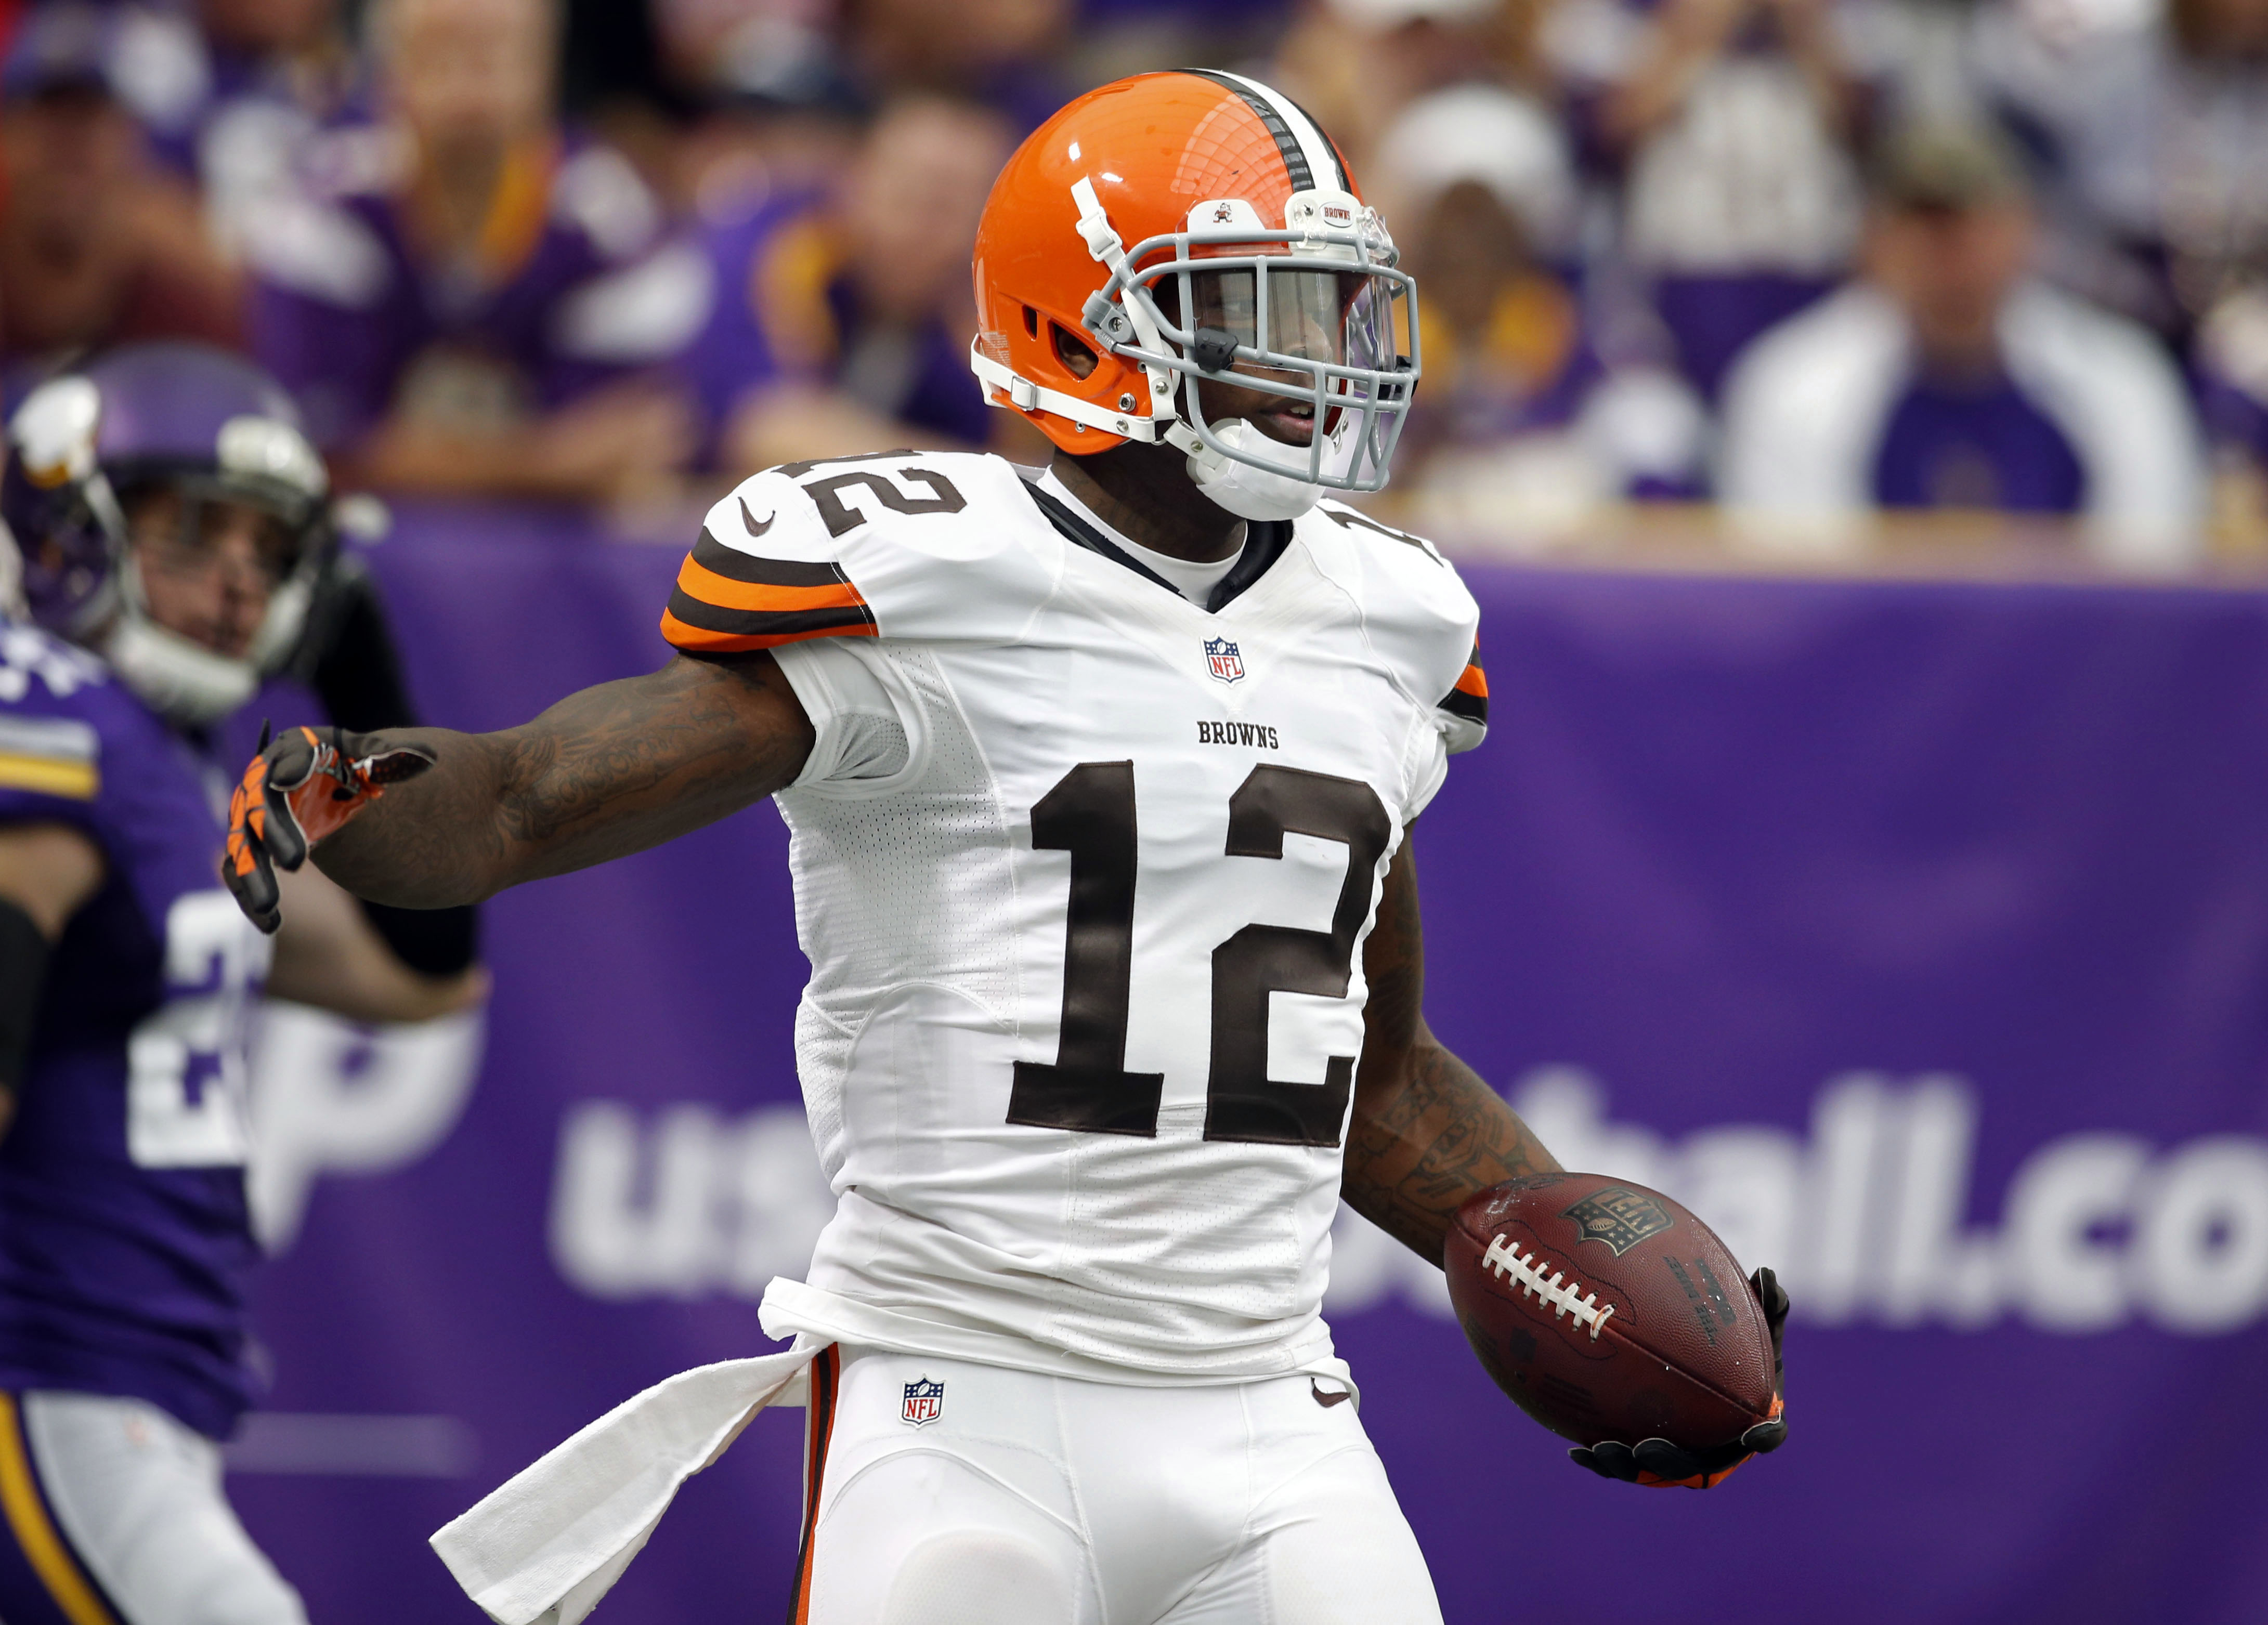 7450777-nfl-cleveland-browns-at-minnesota-vikings